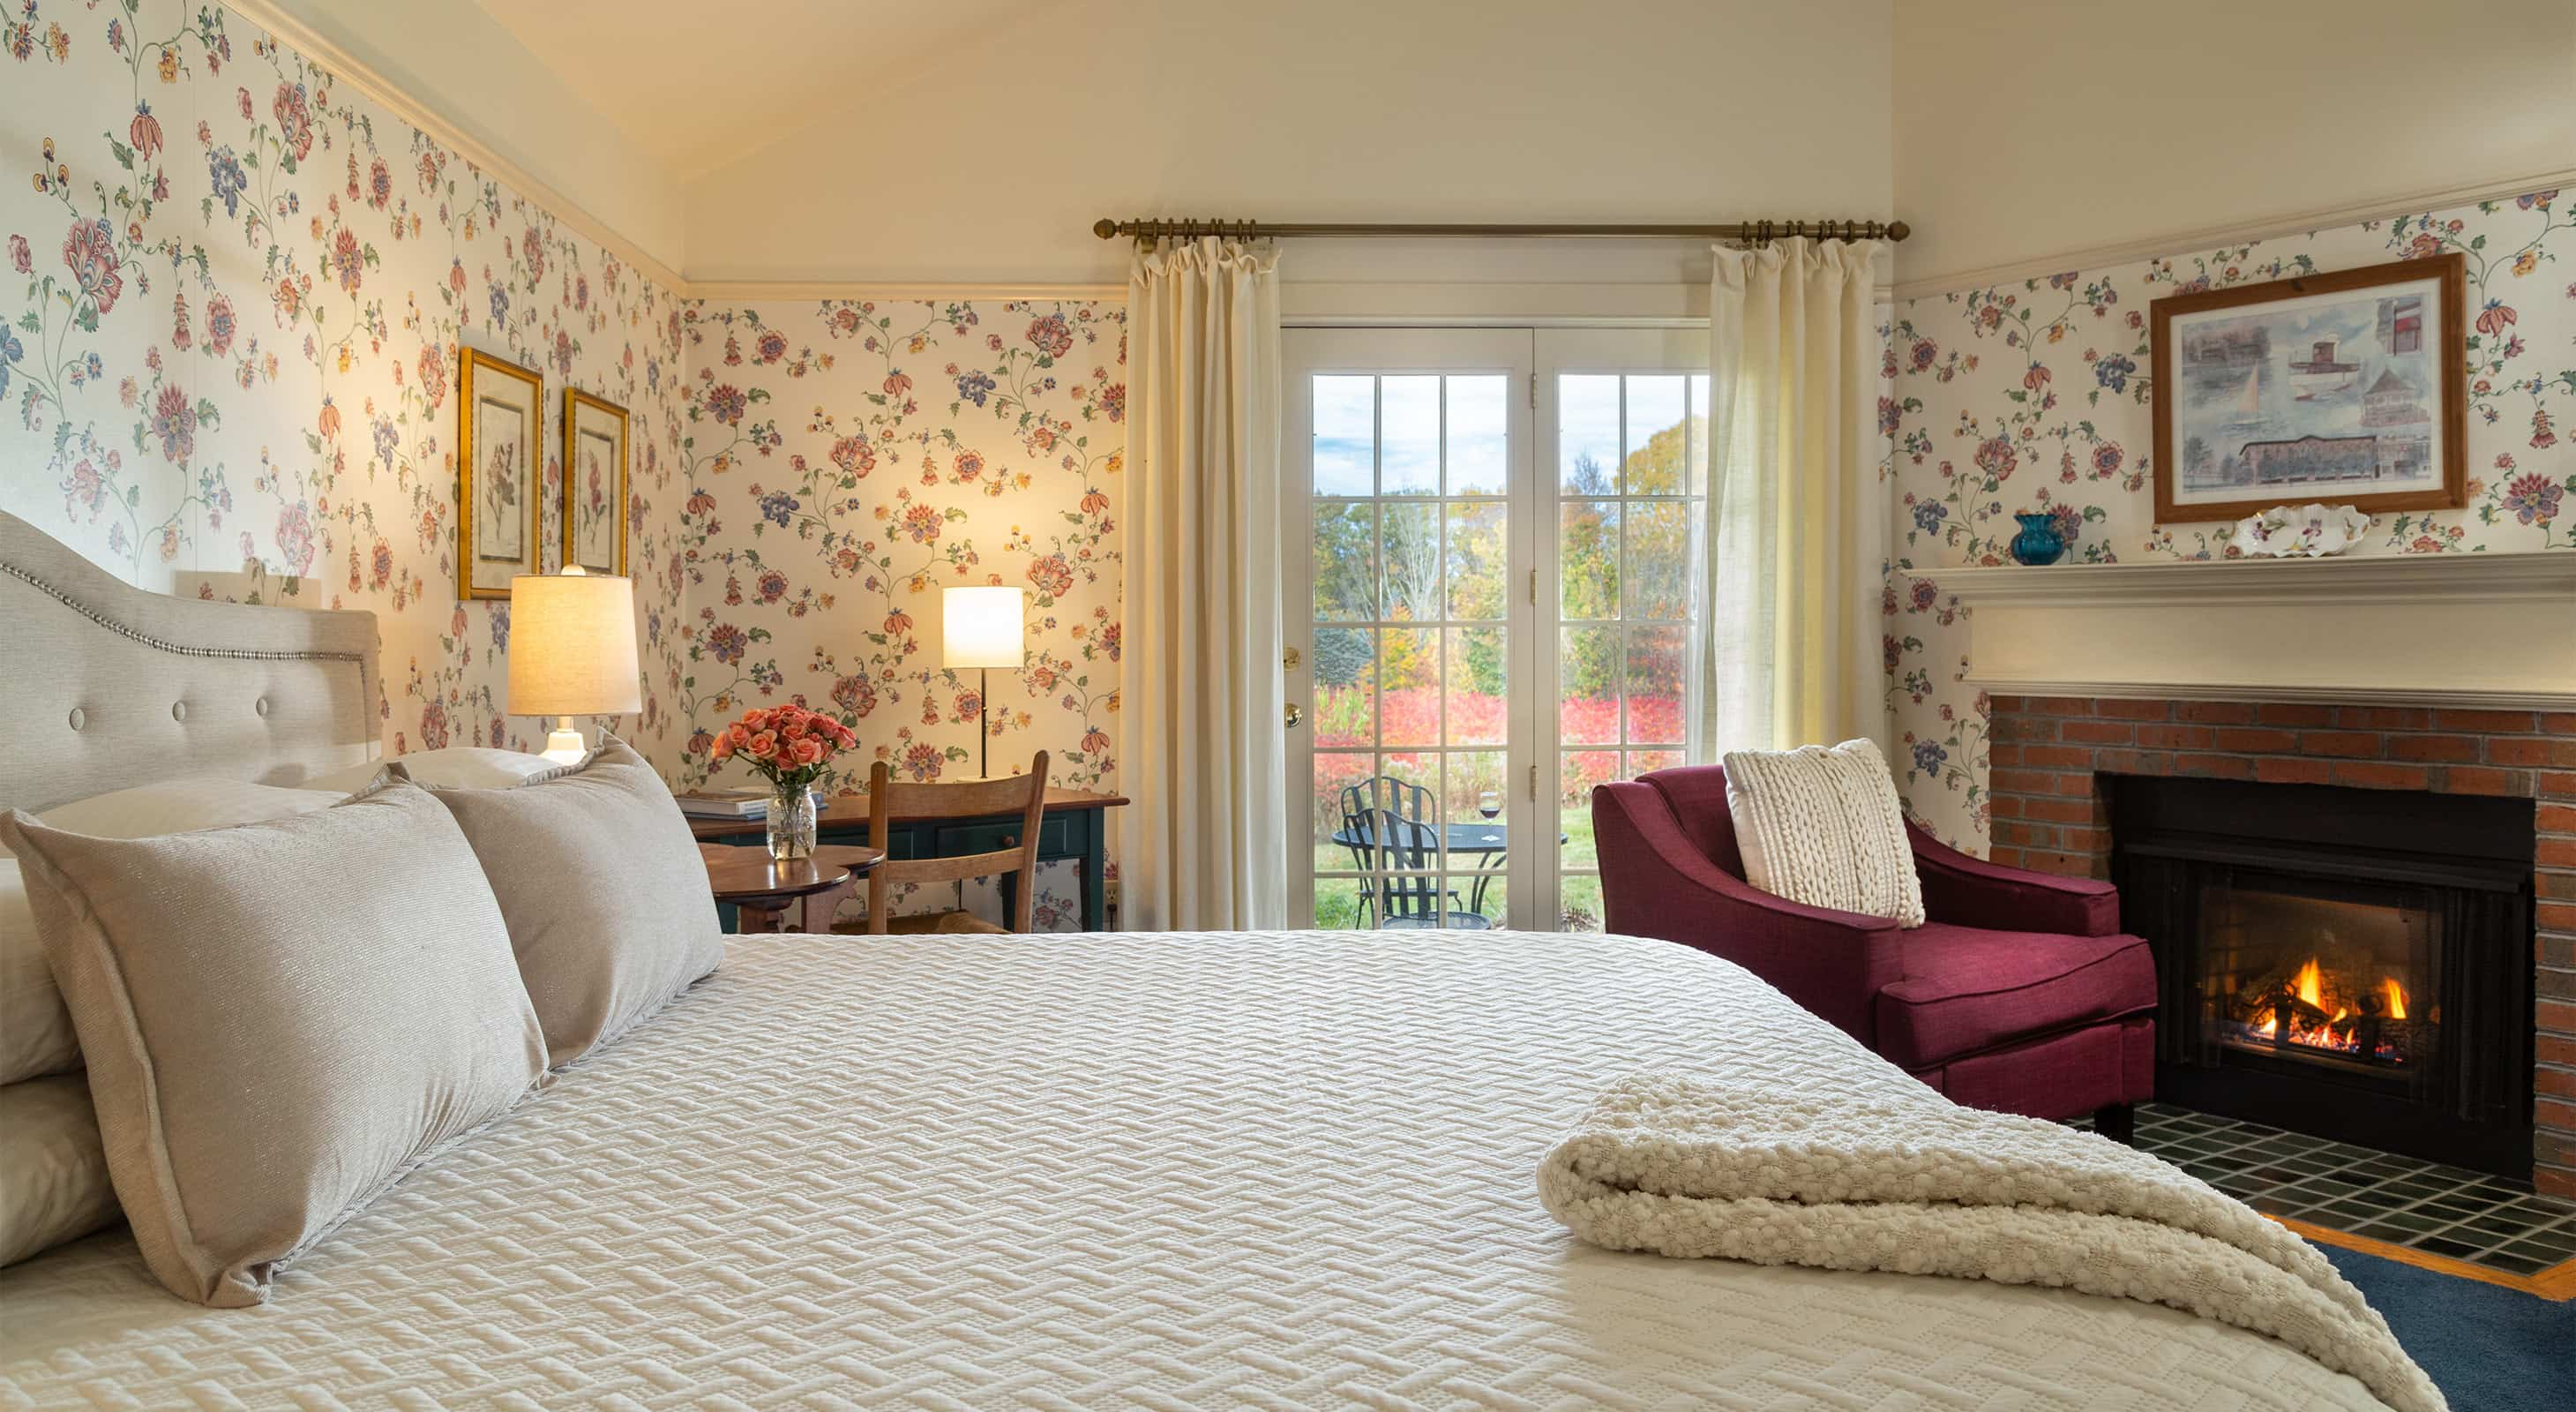 Room 24 at our pet friendly New Hampshire inn